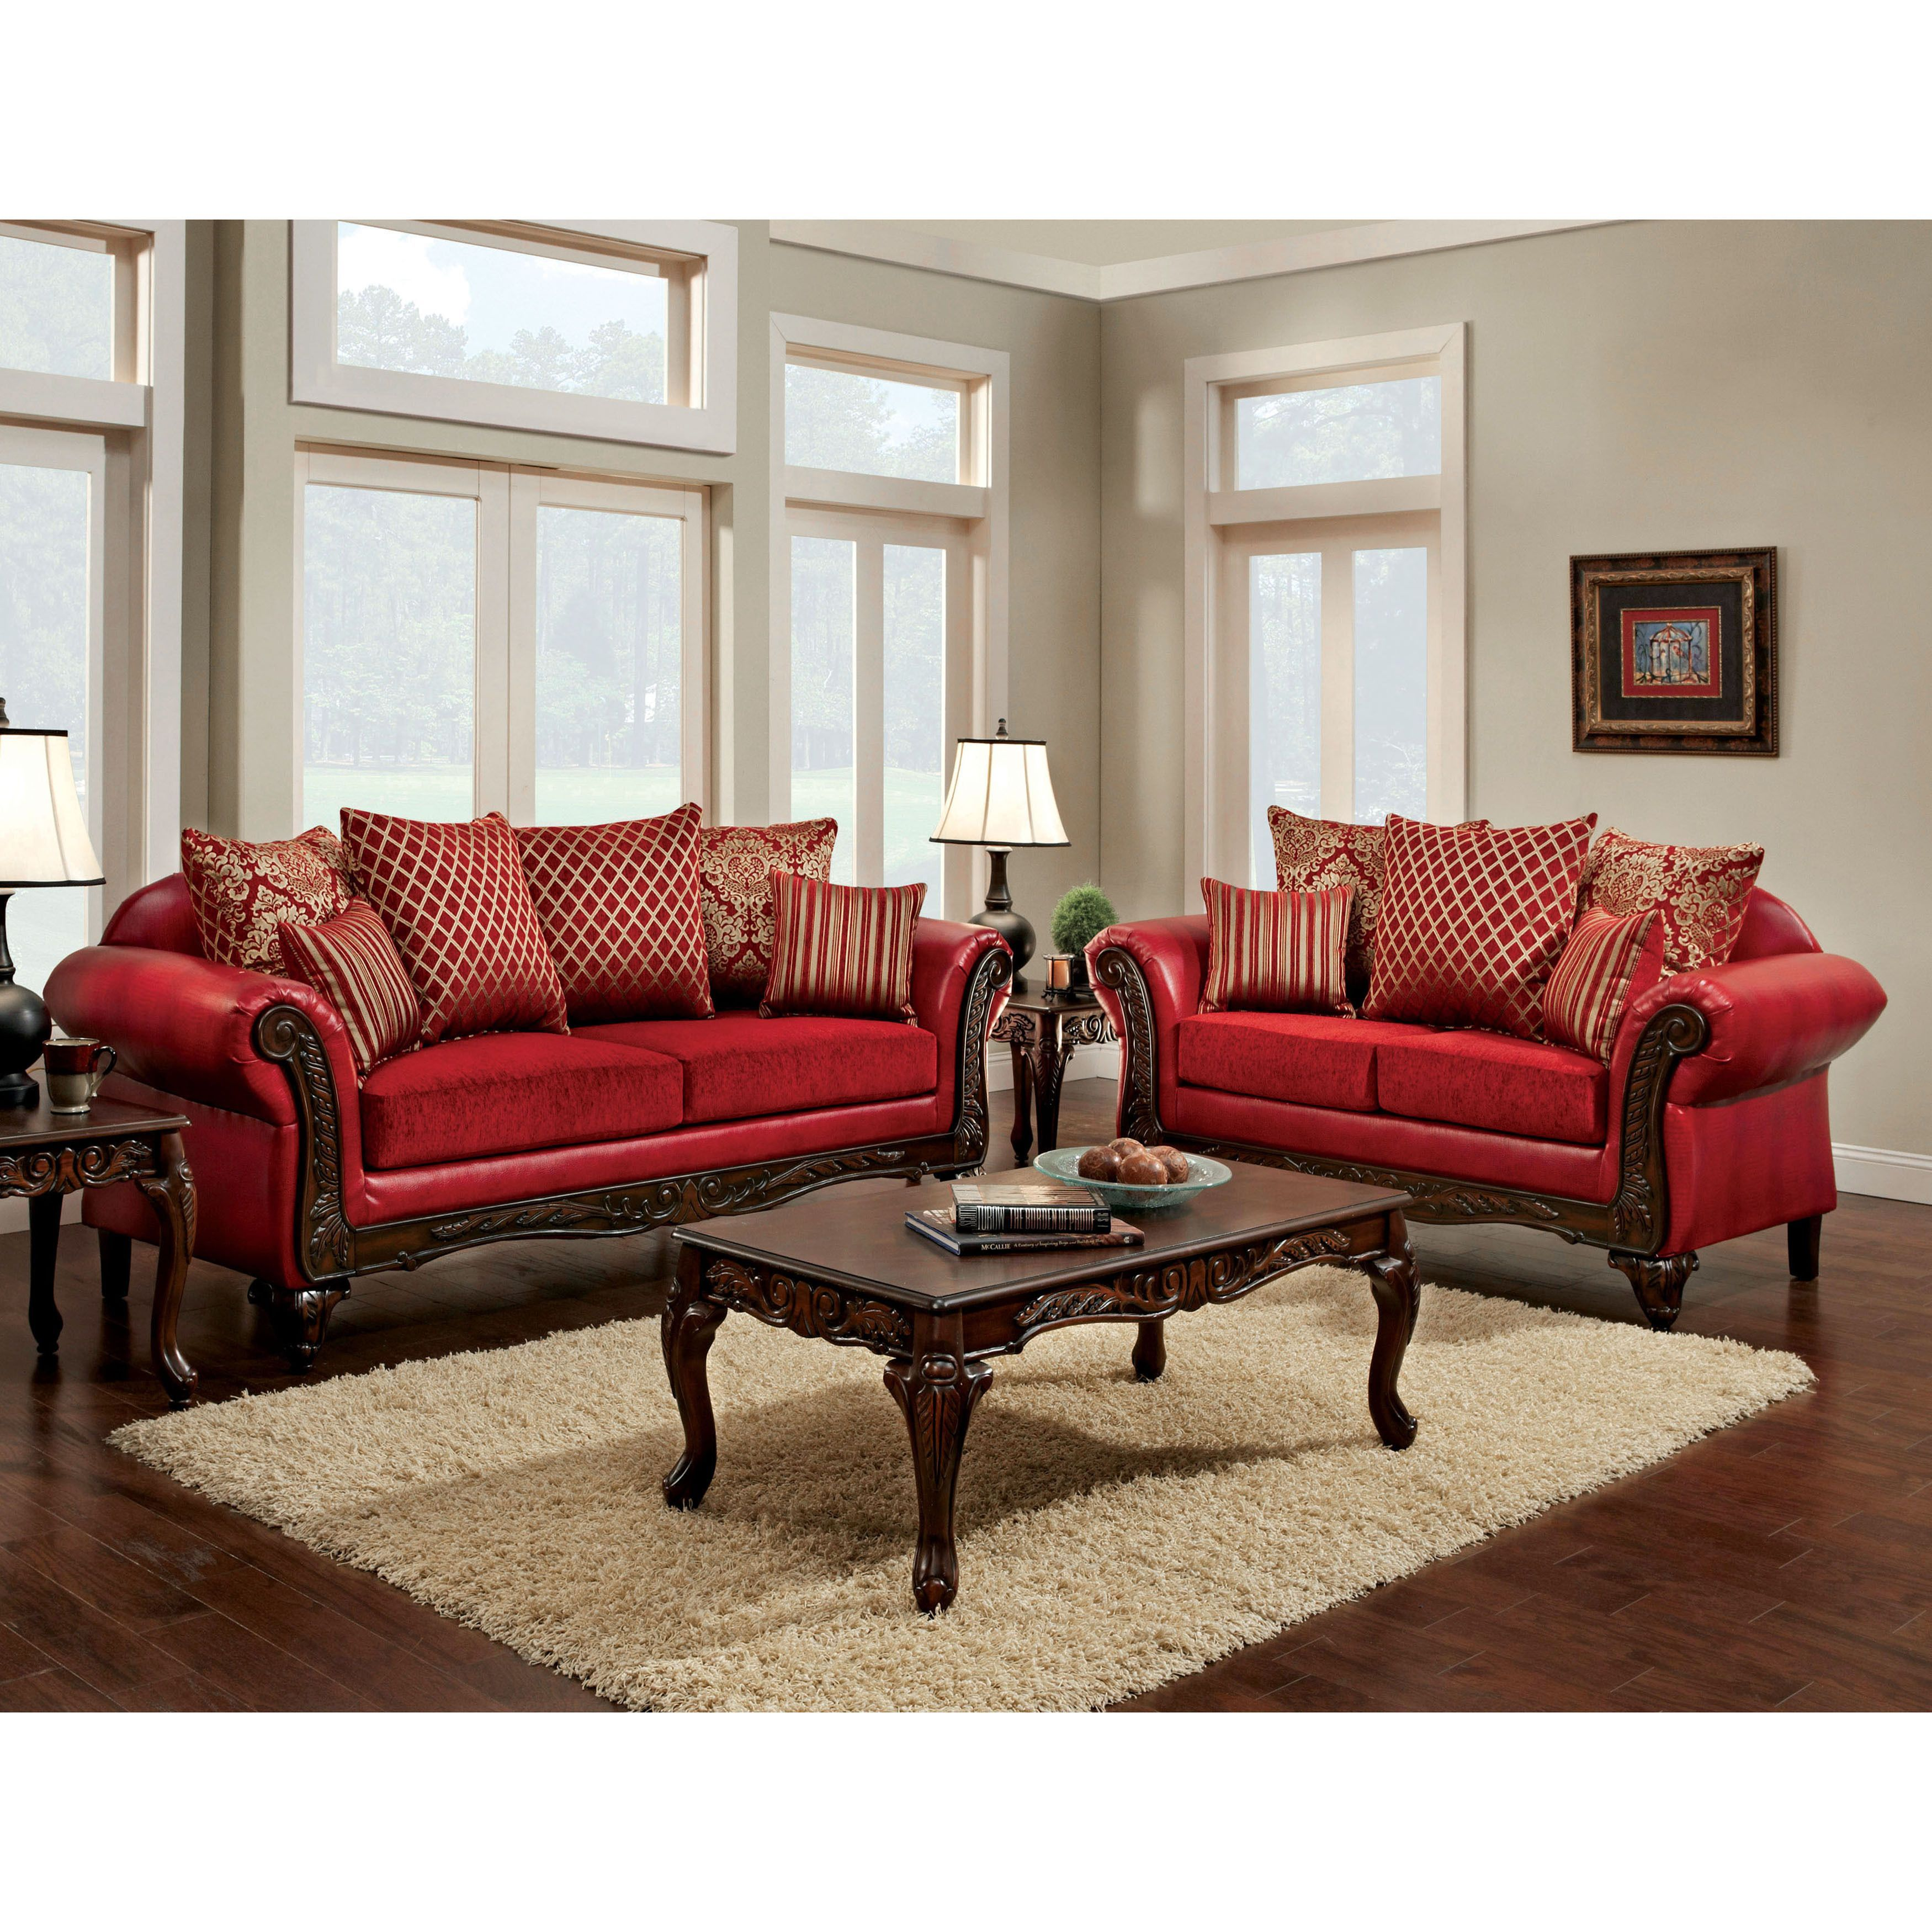 Furniture Of America Cardinal Formal 2 Piece Traditional Red Sofa Set